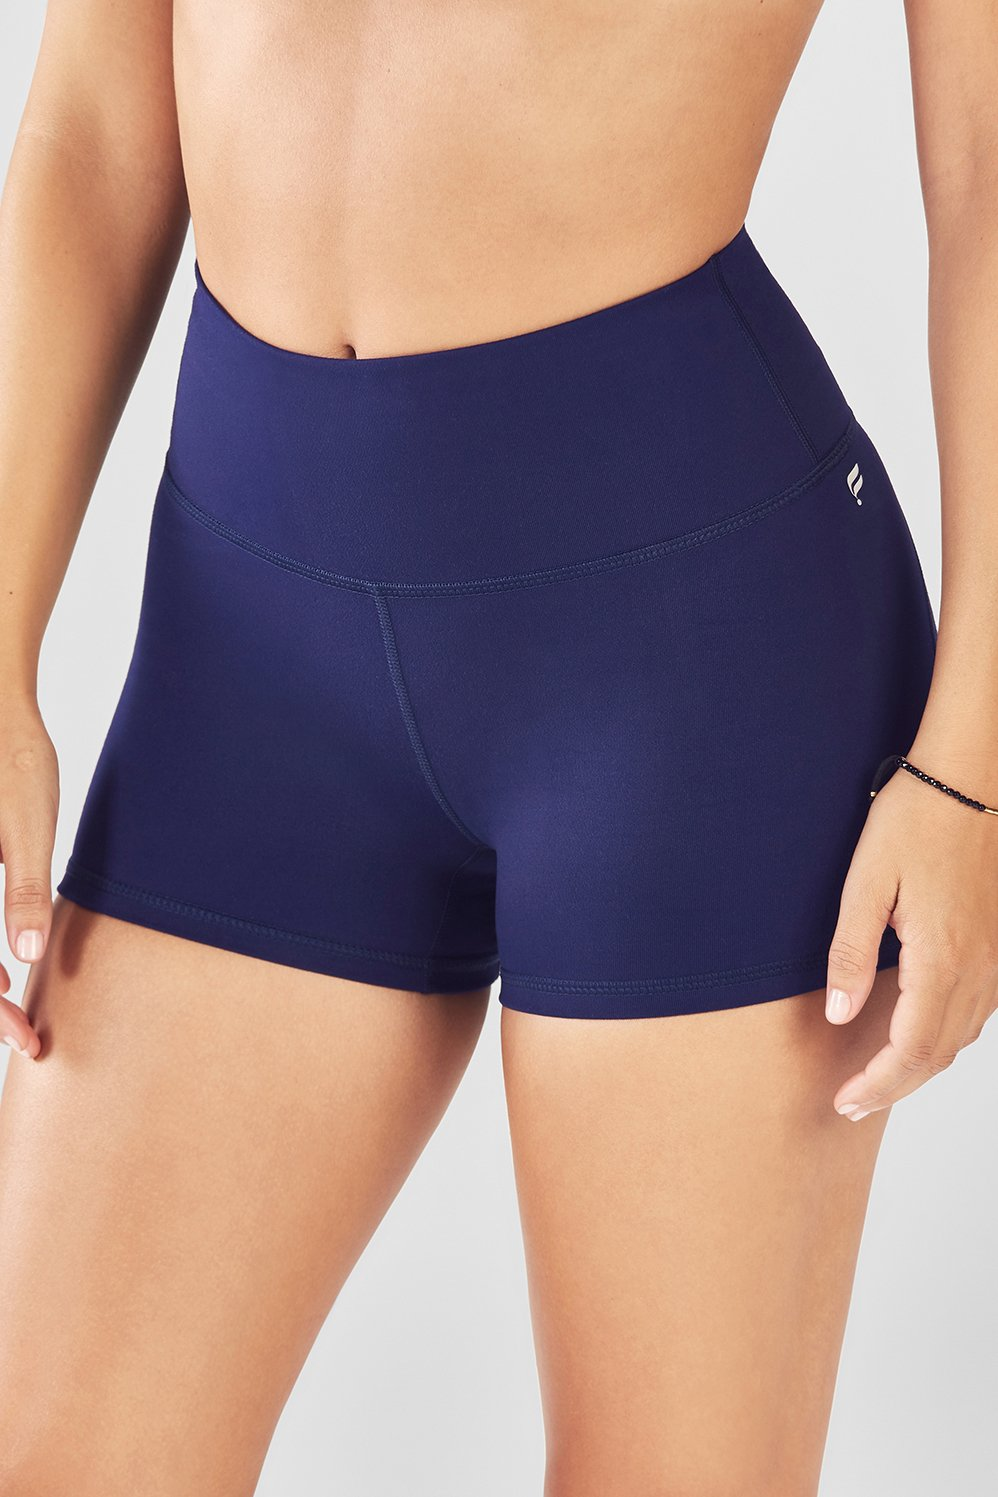 d528e3afd93 High-Waisted Solid PowerHold® Short - Fabletics